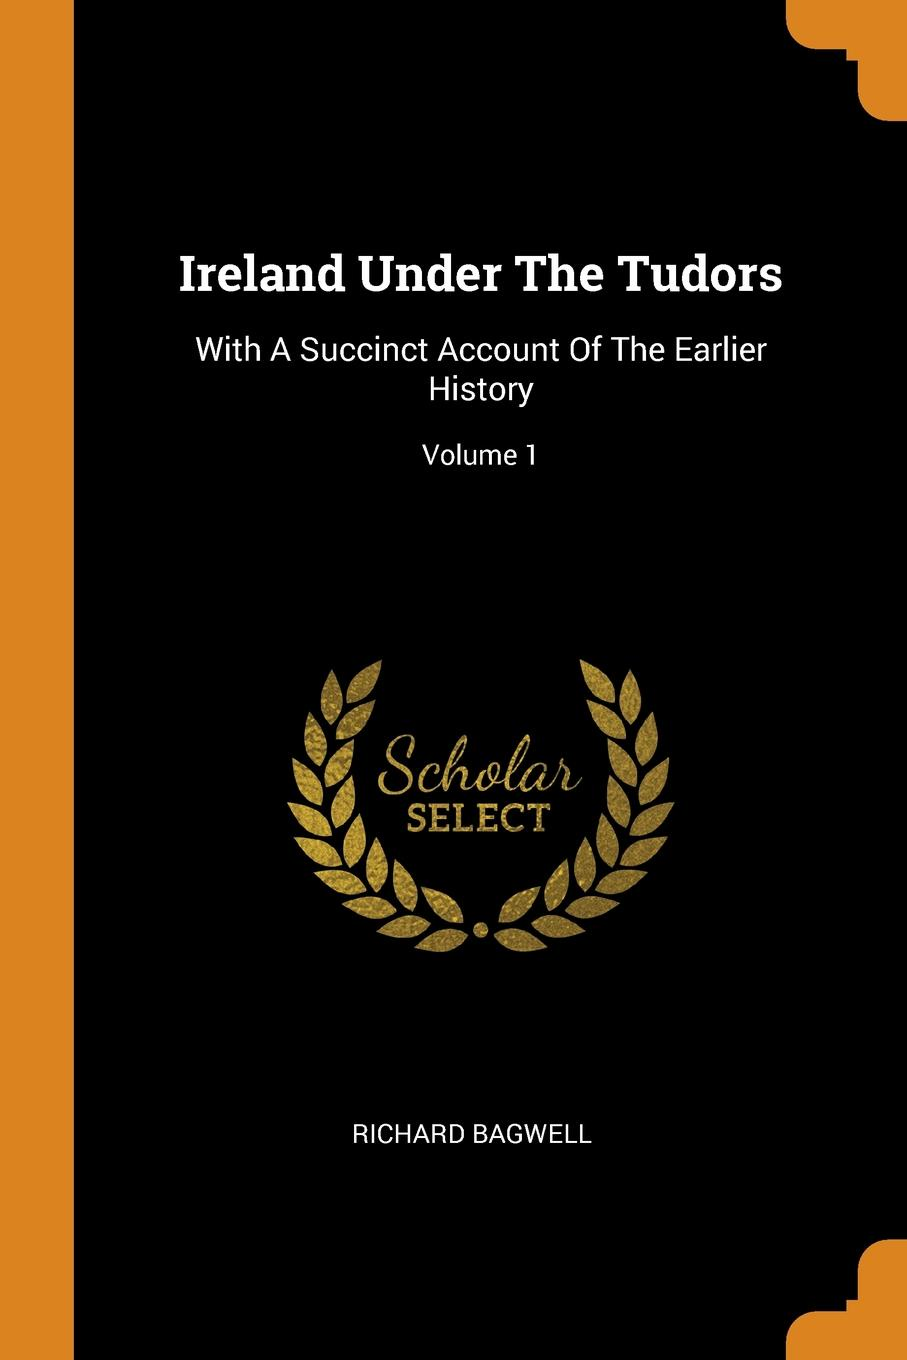 Richard Bagwell Ireland Under The Tudors. With A Succinct Account Of The Earlier History; Volume 1 bagwell richard ireland under the tudors with a succinct account of the earlier history vol 1 of 3